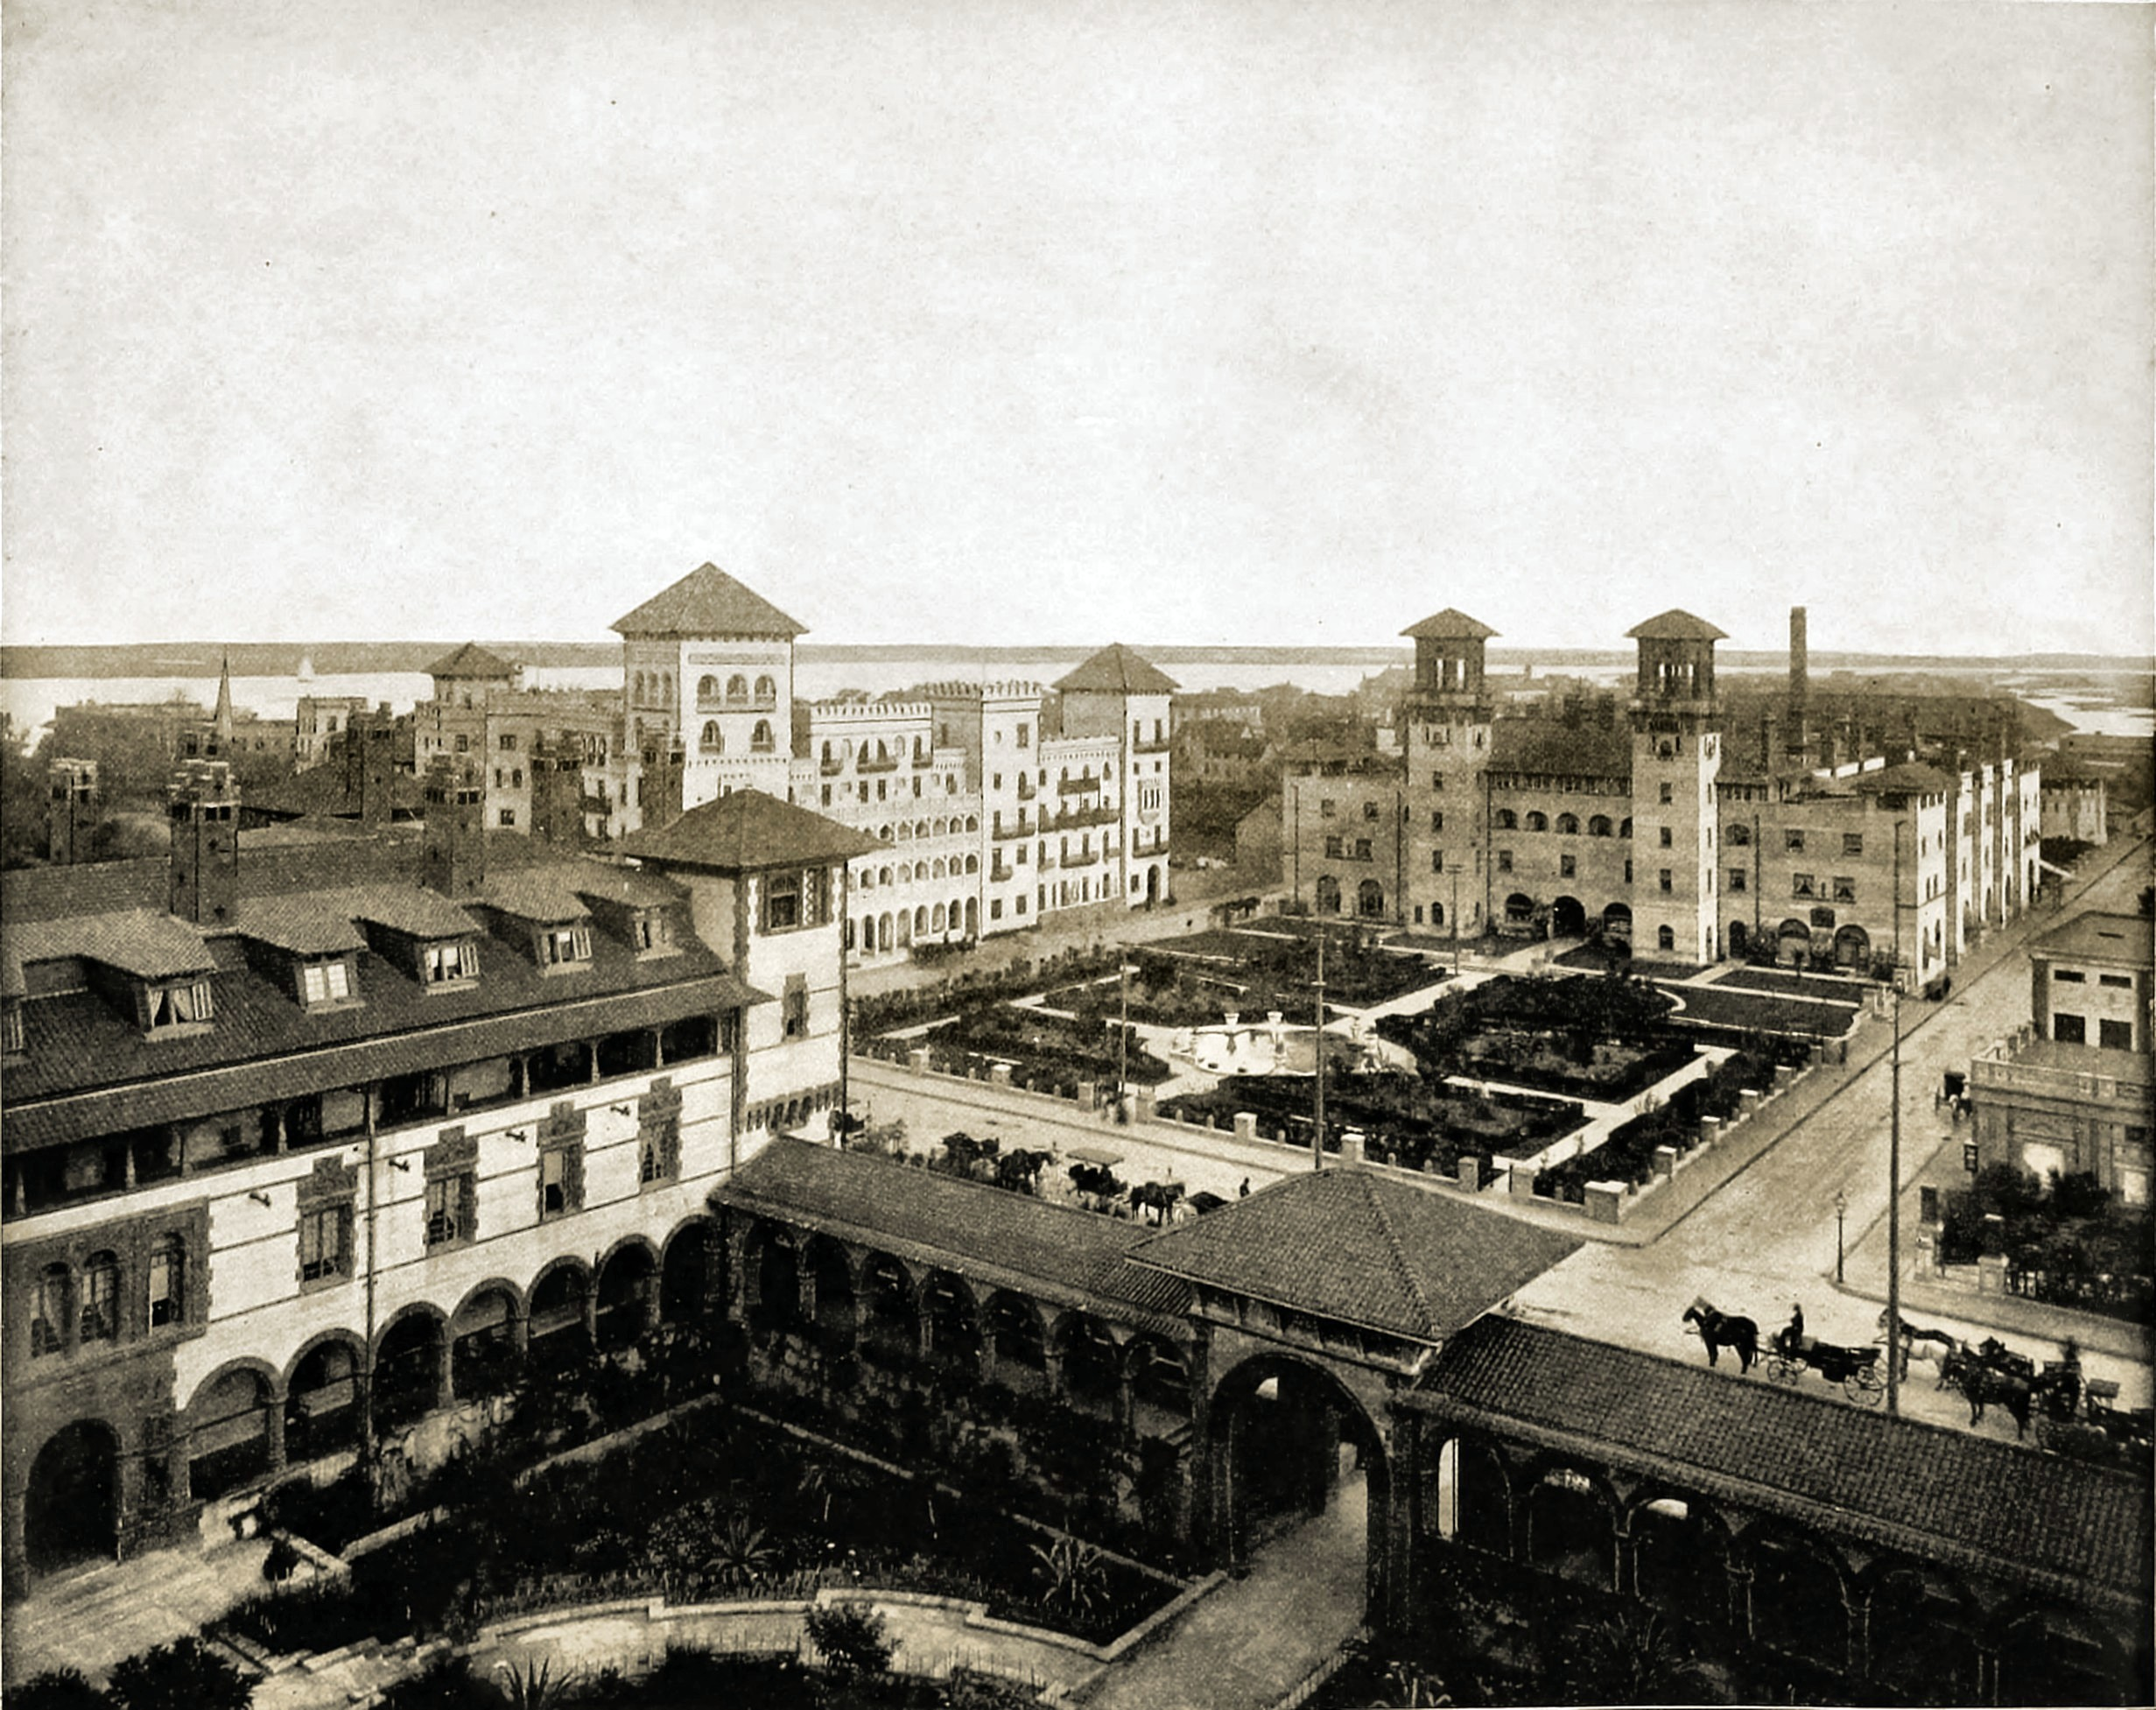 Panorama from Ponce de Leon Hotel, St. Augustine, Florida, USA about 1892